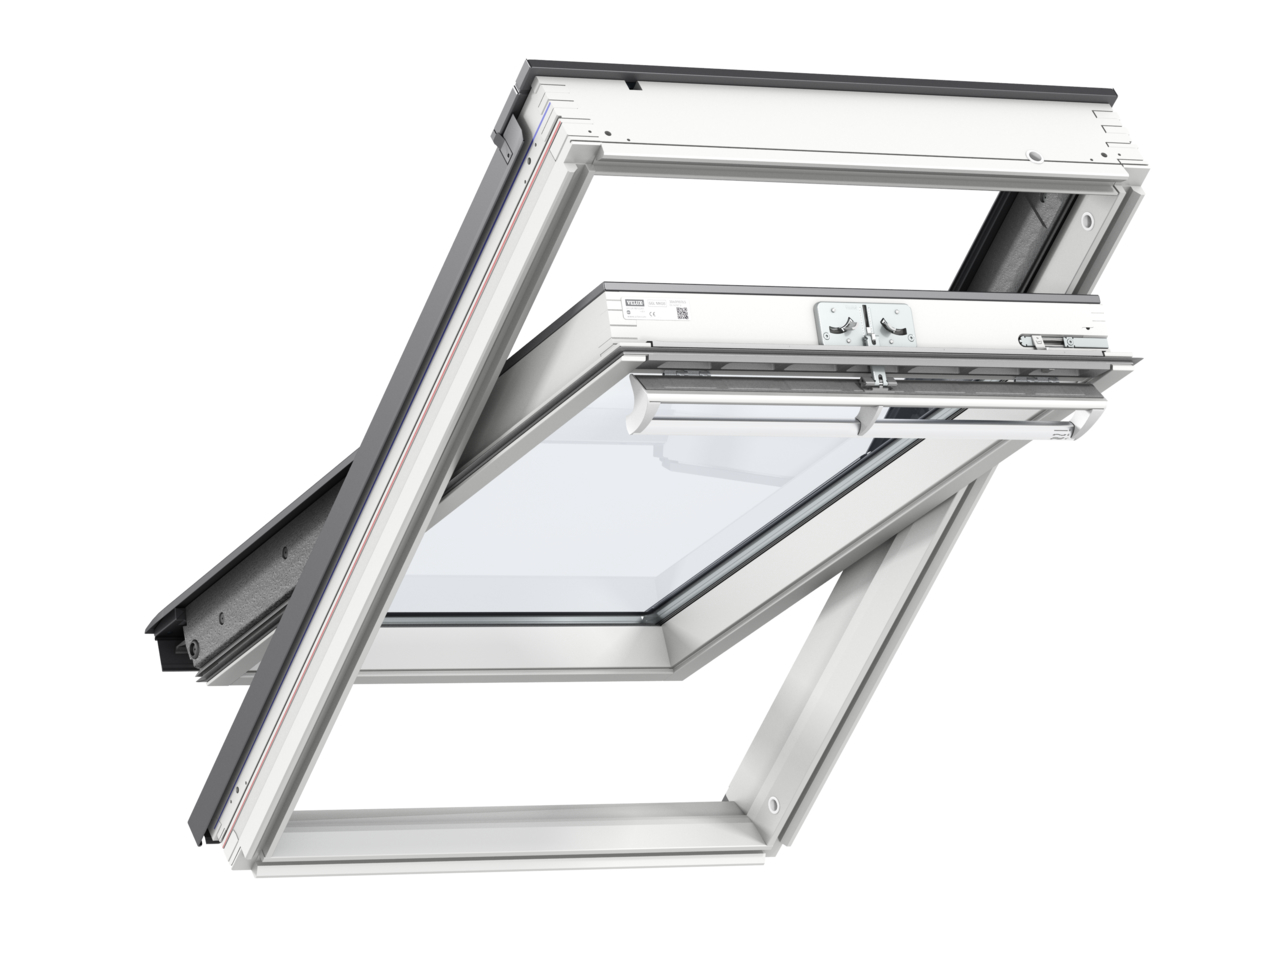 Velux GGL MK04 780 x 980mm Centre Pivot 62Pane Roof Window - White Painted